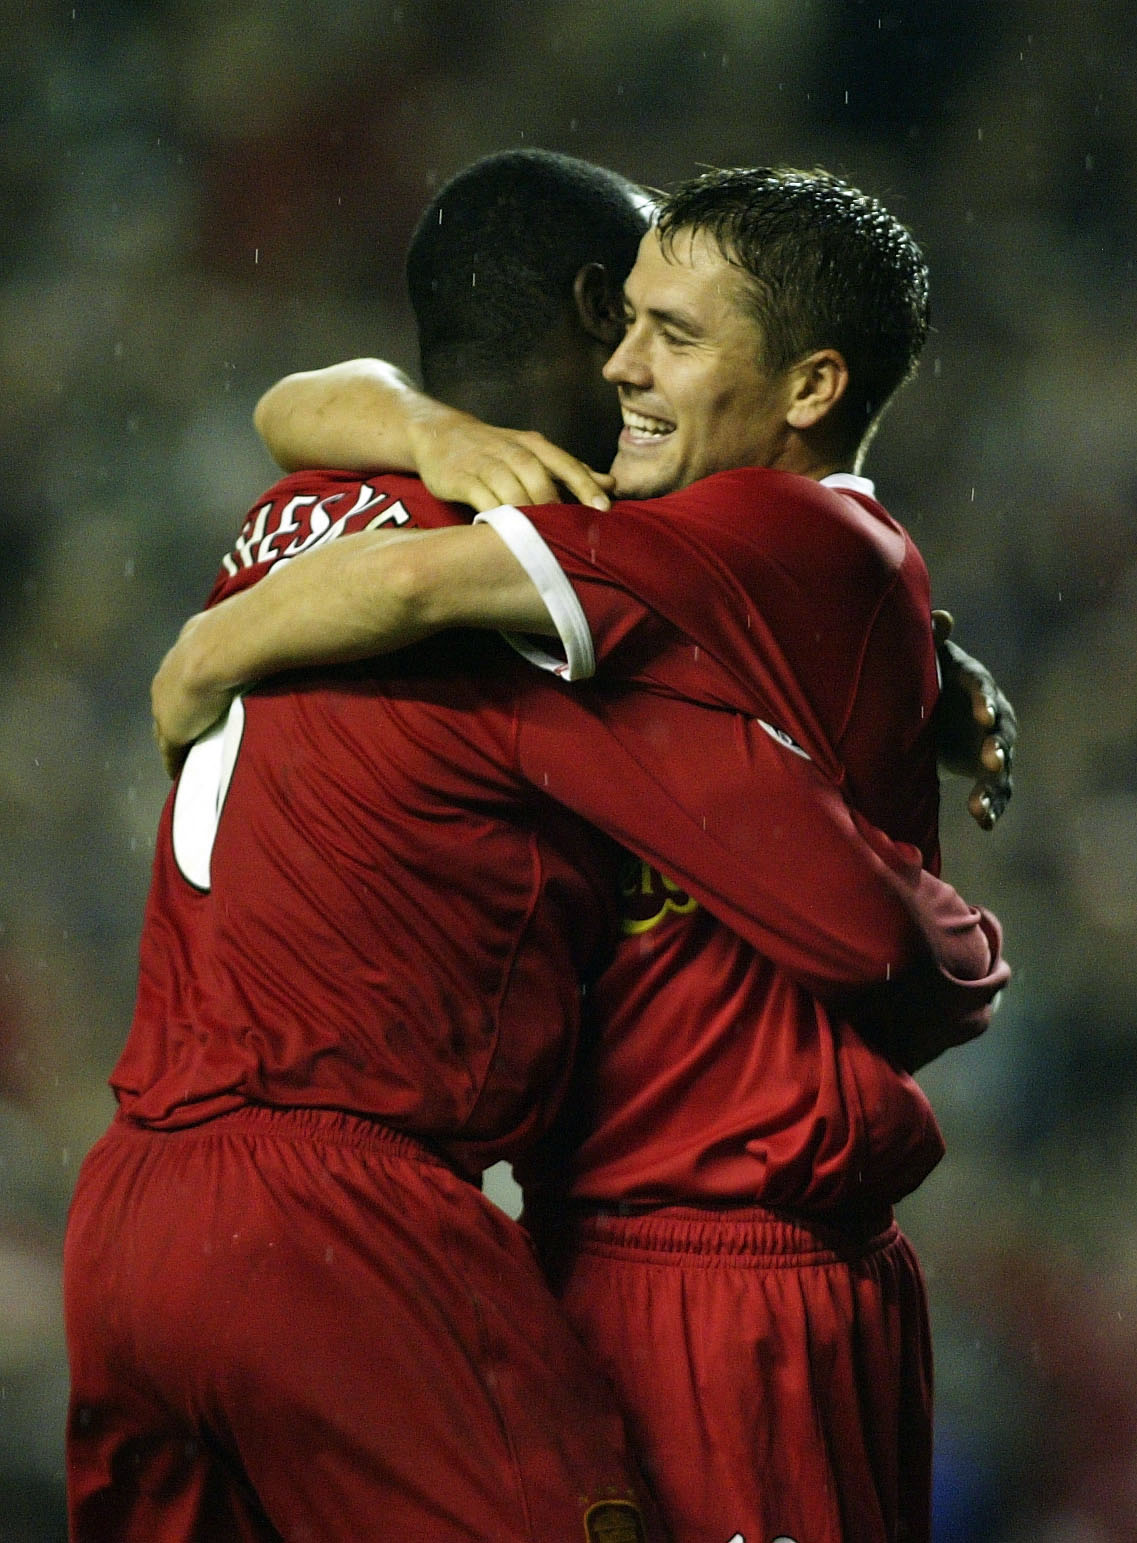 LIVERPOOL - OCTOBER 2:  Emile Heskey of Liverpool celebrates with Michael Owen after scoring the fifth goal during the Liverpool v Spartak Moscow UEFA Champions League phase one, Group B match at Anfield on October 2, 2002 in Liverpool, England. (Photo by